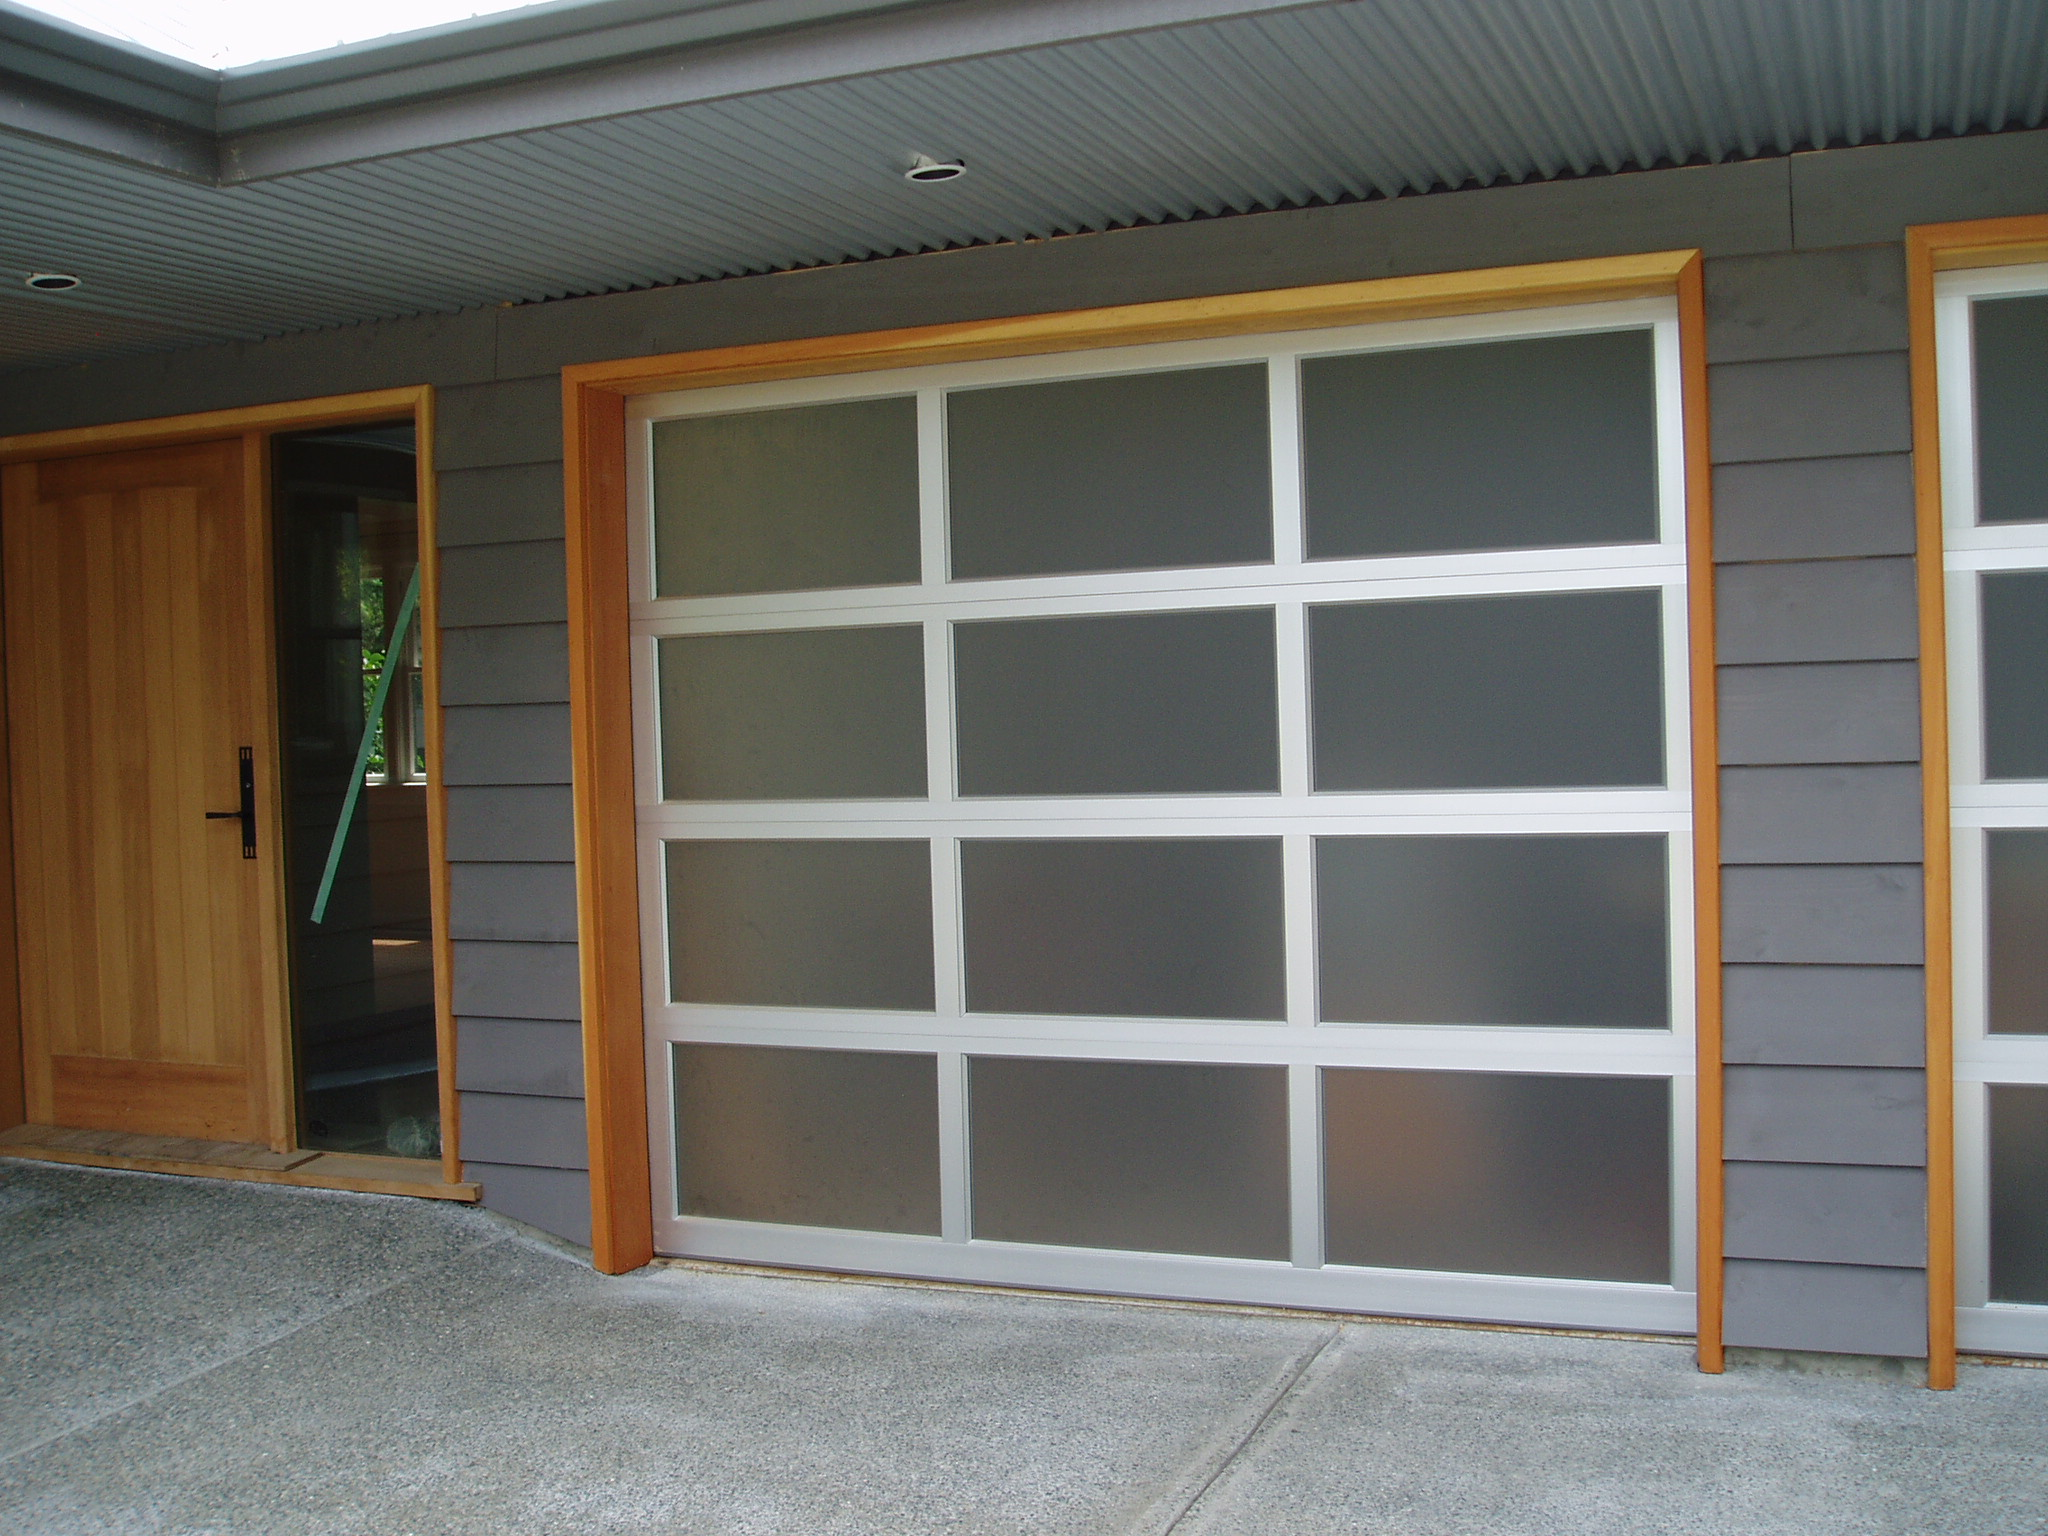 doors aluminum modern garage sweethaus b t restaurant glass door